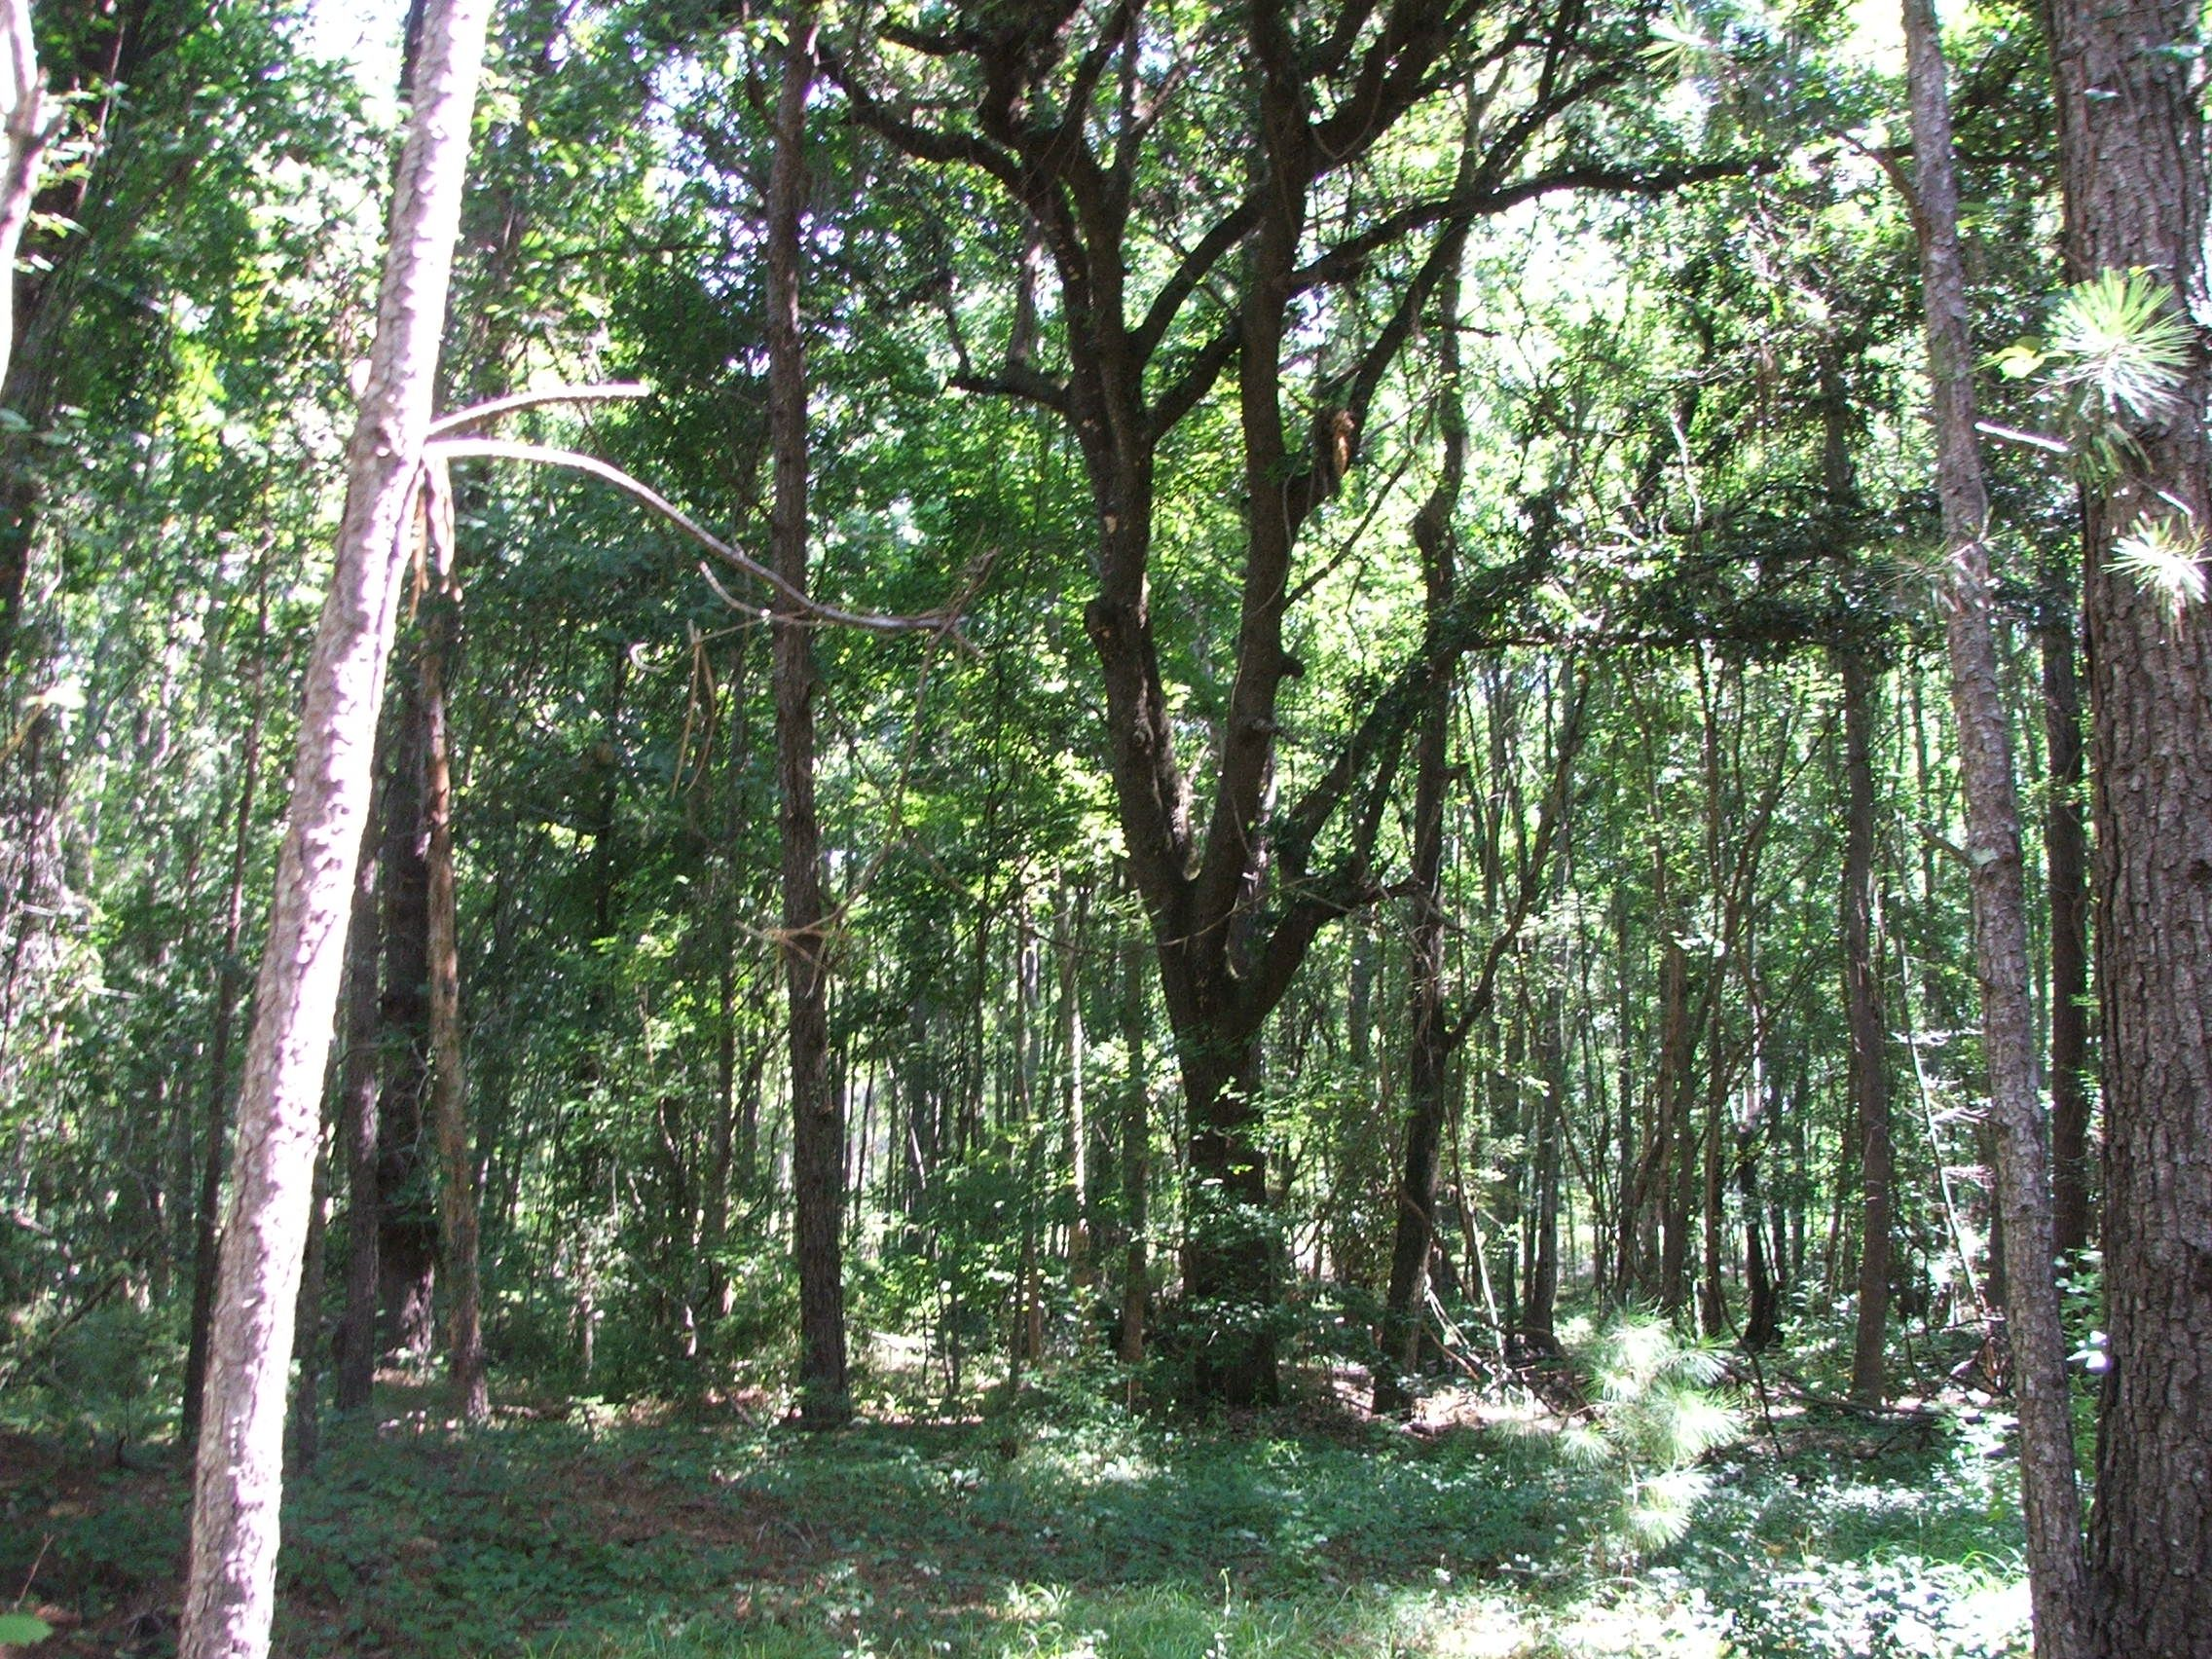 Evans County GA - 26 Acres +/- Green Hill Land and Timber, LLC